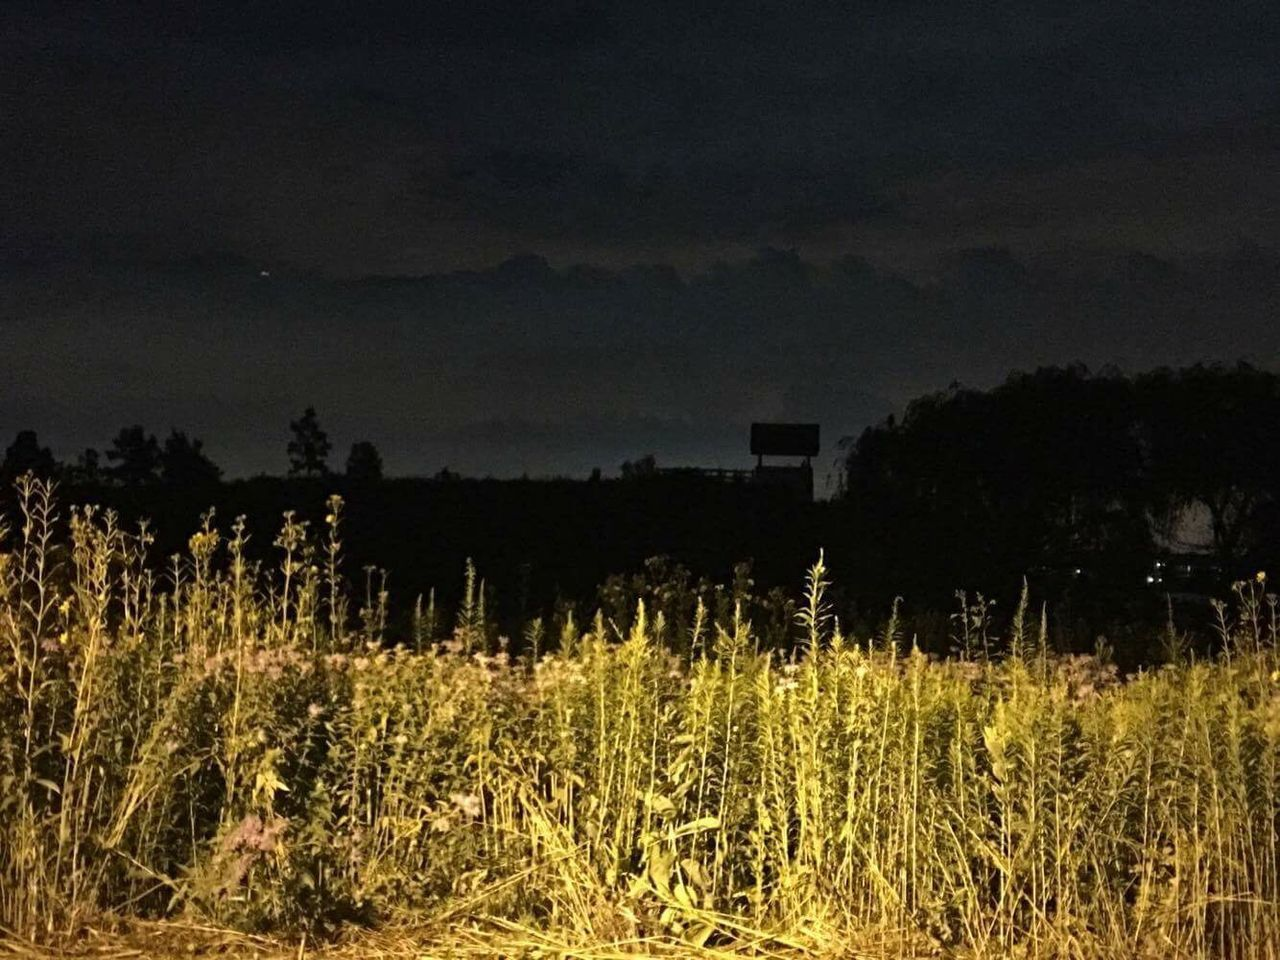 nature, growth, landscape, field, night, silhouette, outdoors, no people, plant, grass, sky, tree, beauty in nature